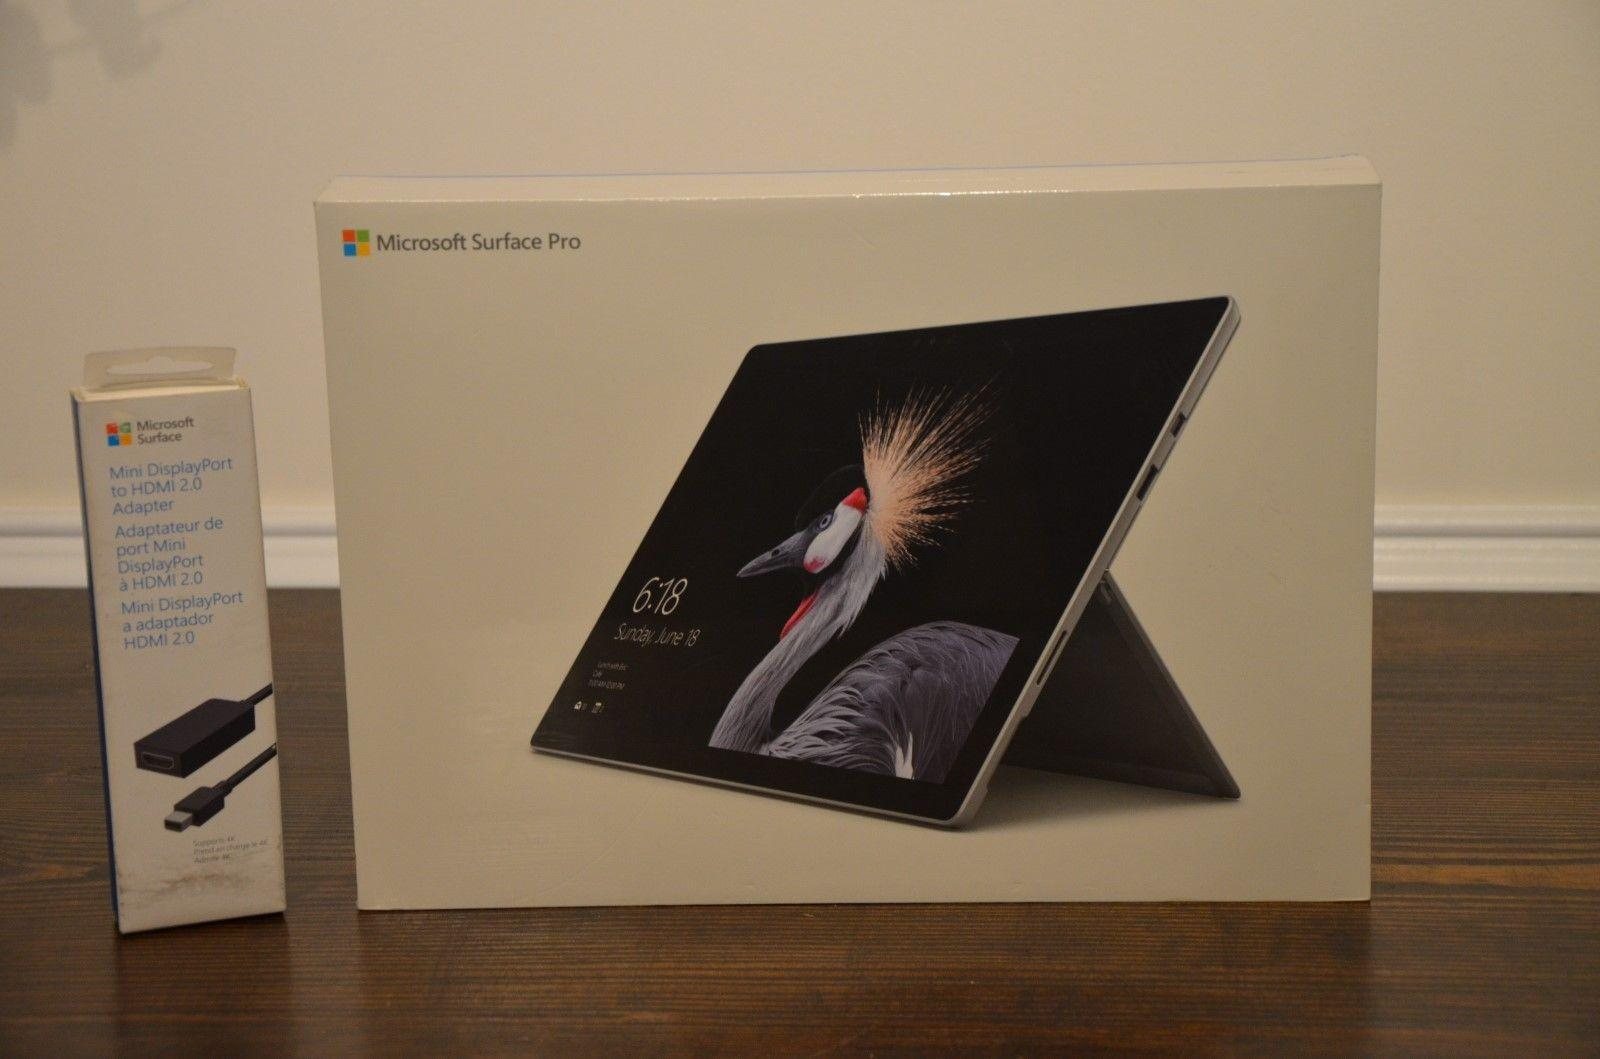 Microsoft Surface Pro 256GB Core i7-7660U 8GB Wi-Fi 12.3